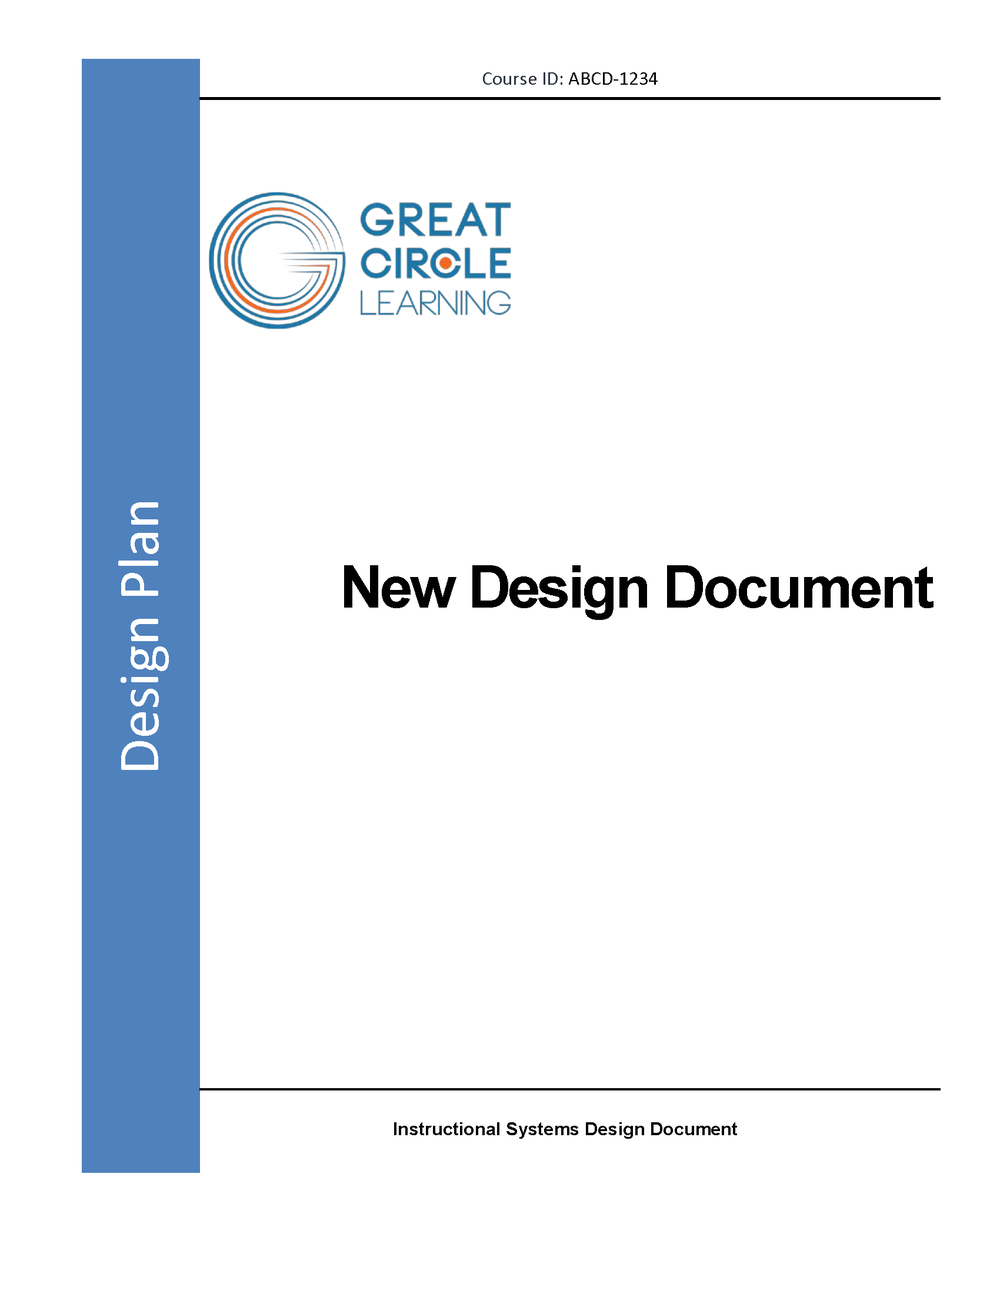 New Design Document_Page_1.png